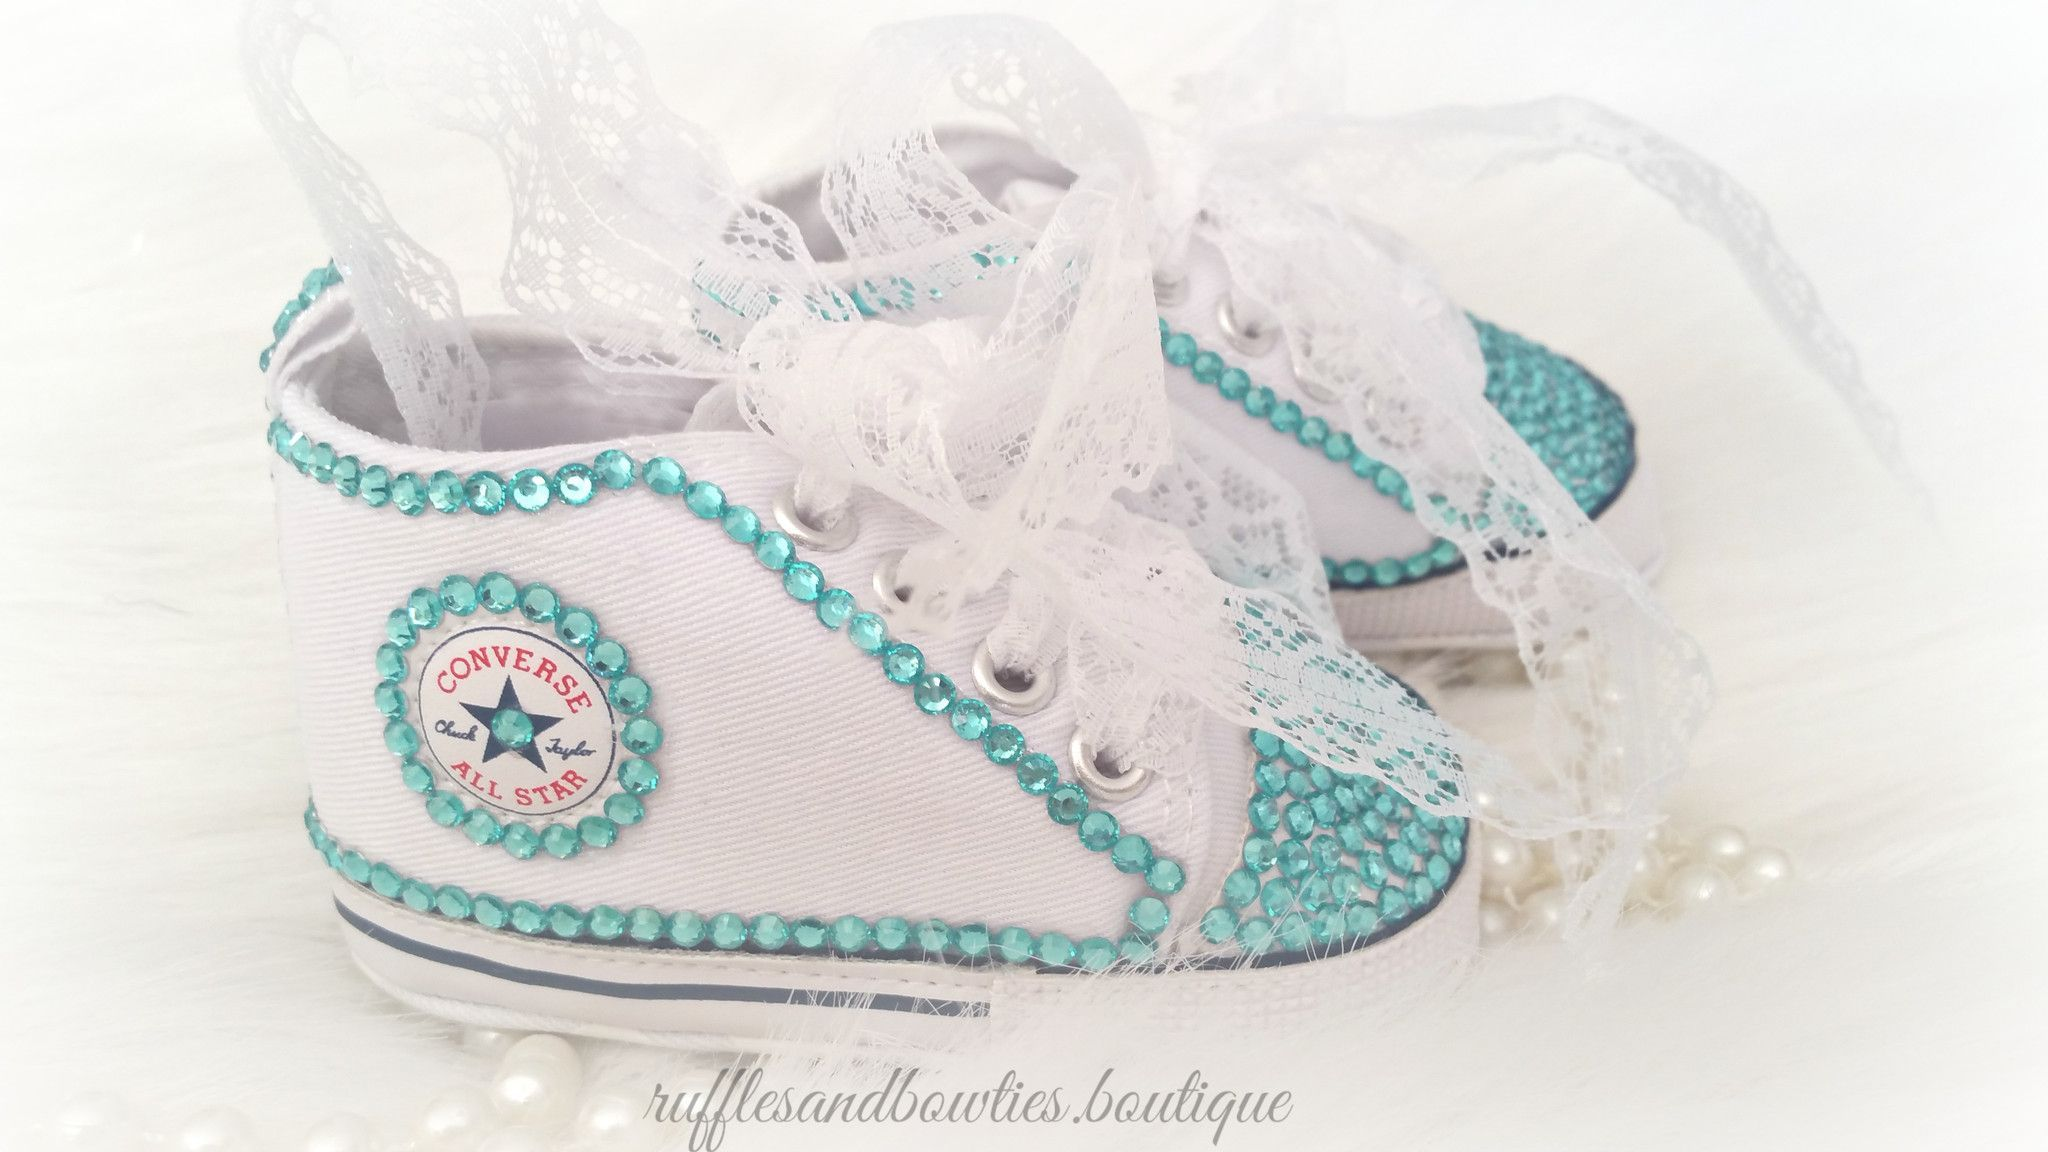 Baby White Converse Pram Shoes Baby Girl Crystal Shoes White Converse Hightops With Aqua